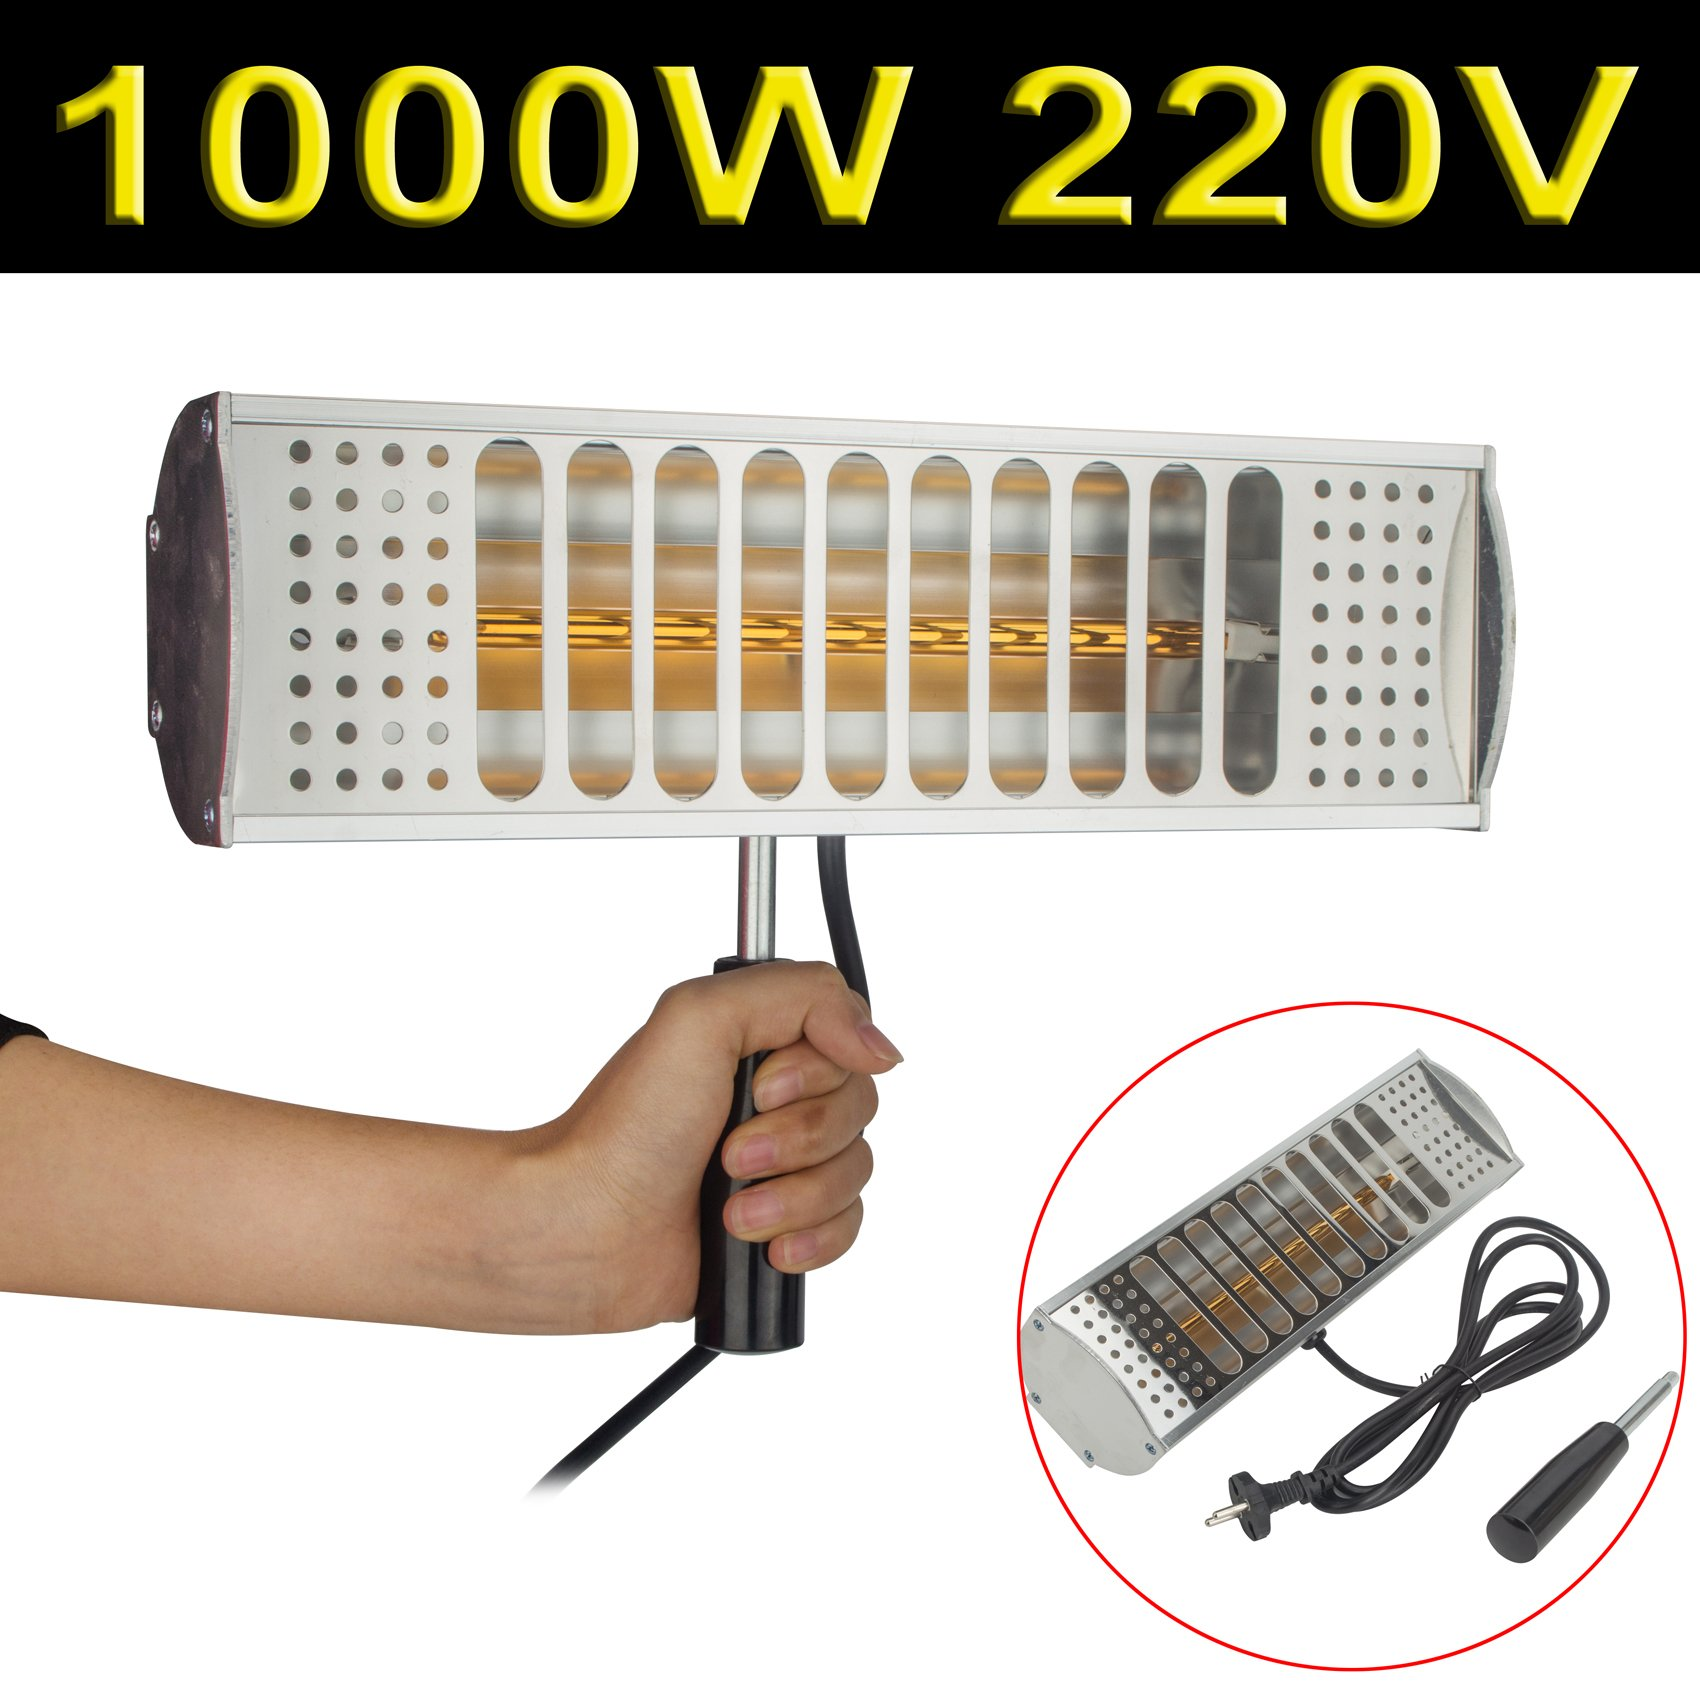 DODOING 220V 1000W Hand Held Infrared Spray Paint Heating Curing Lamp Baking Booth Heater